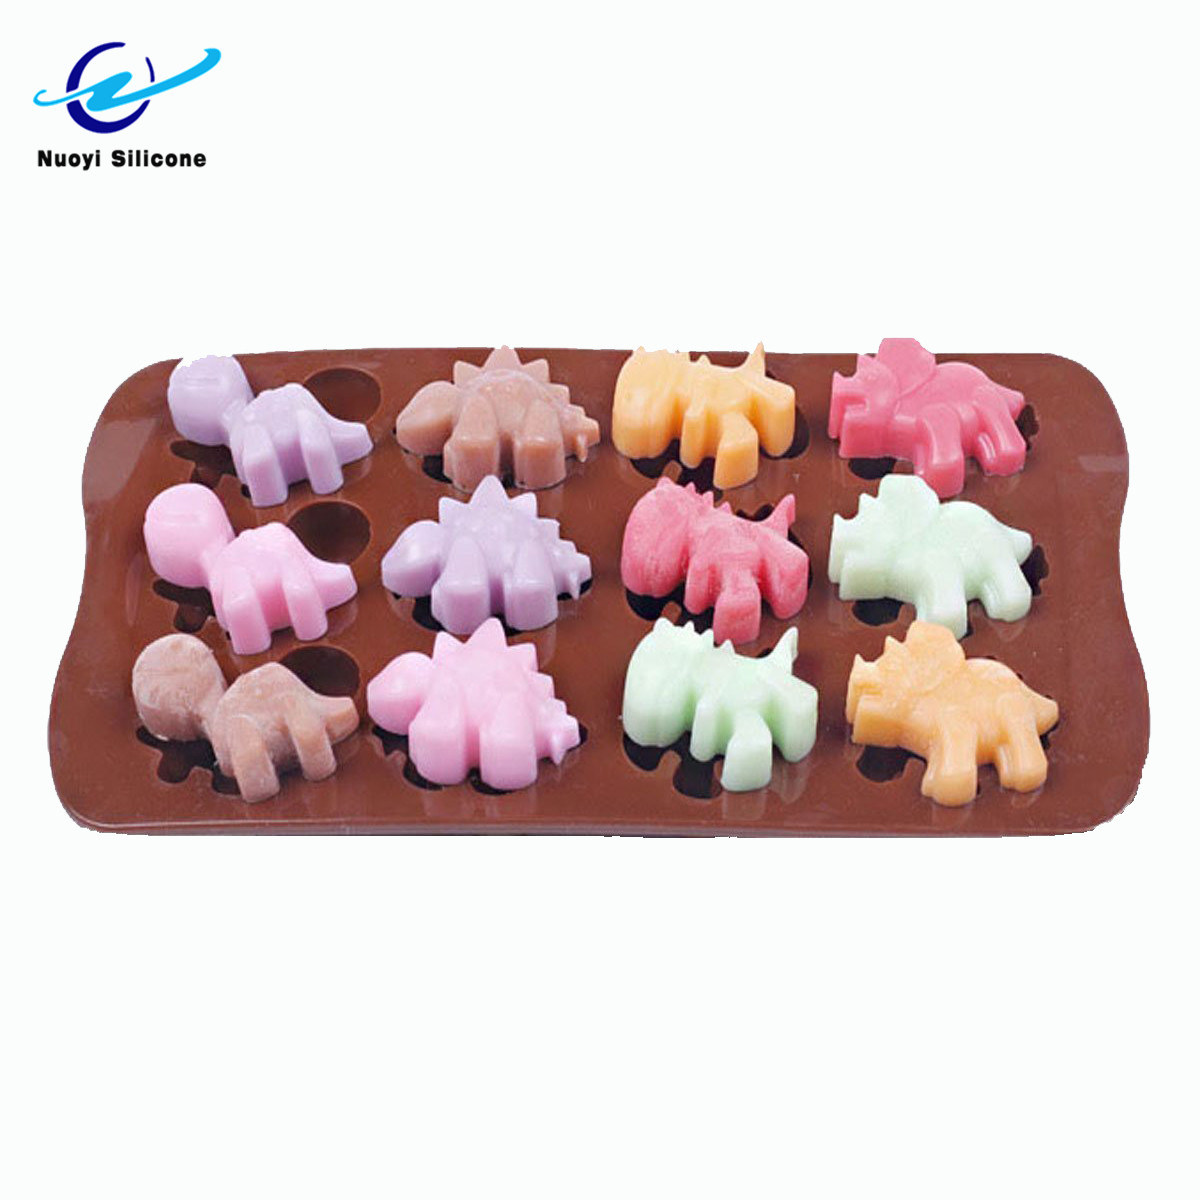 Dinosaur Soap Mould Cake Chocolate Cookies Baking Tool Candle Mold Ice Cube